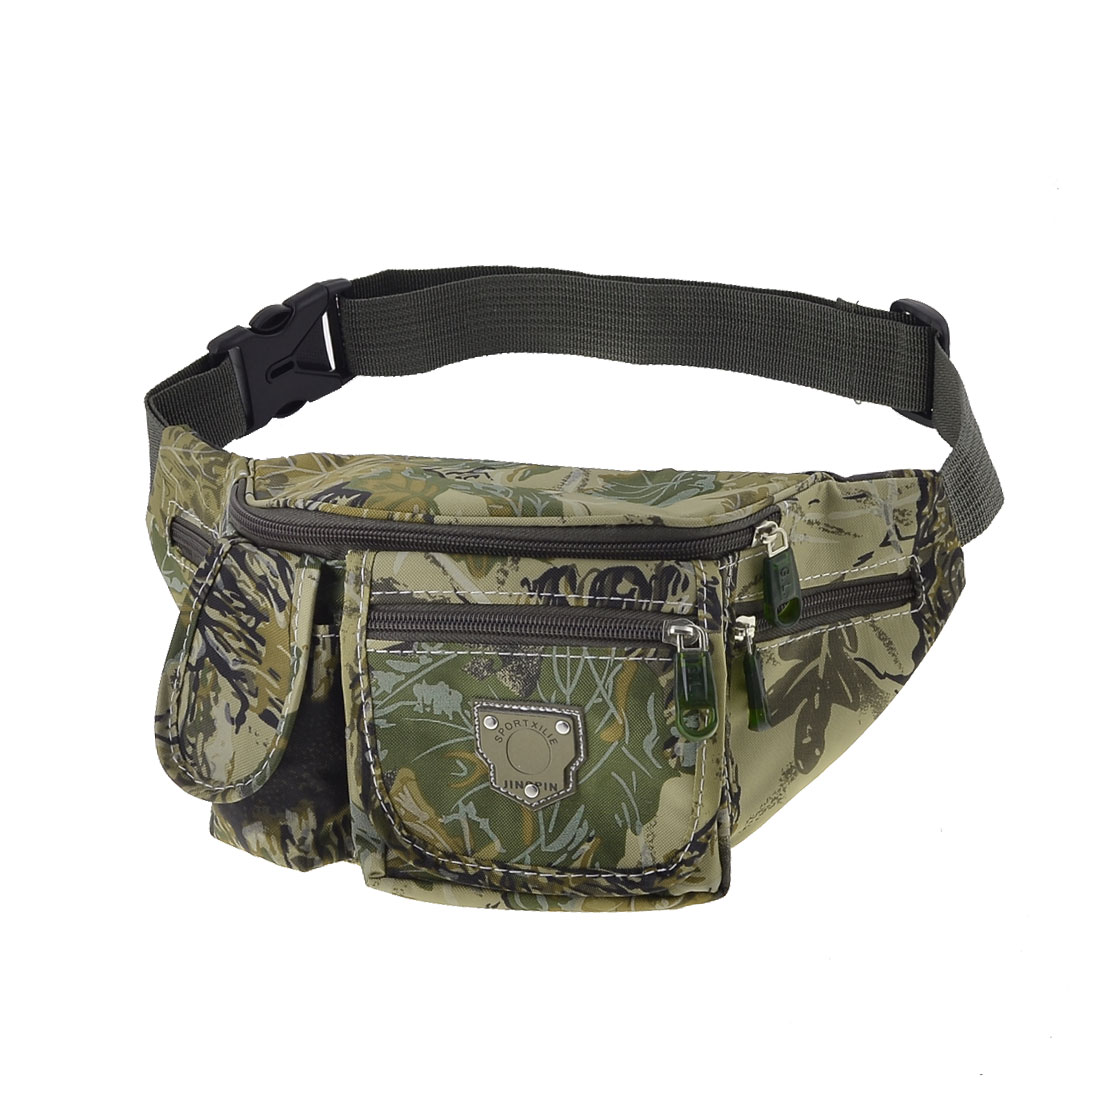 Man Hiking Camouflage Pattern Multiple Pockets Adjustable Waist Pack Green Khaki